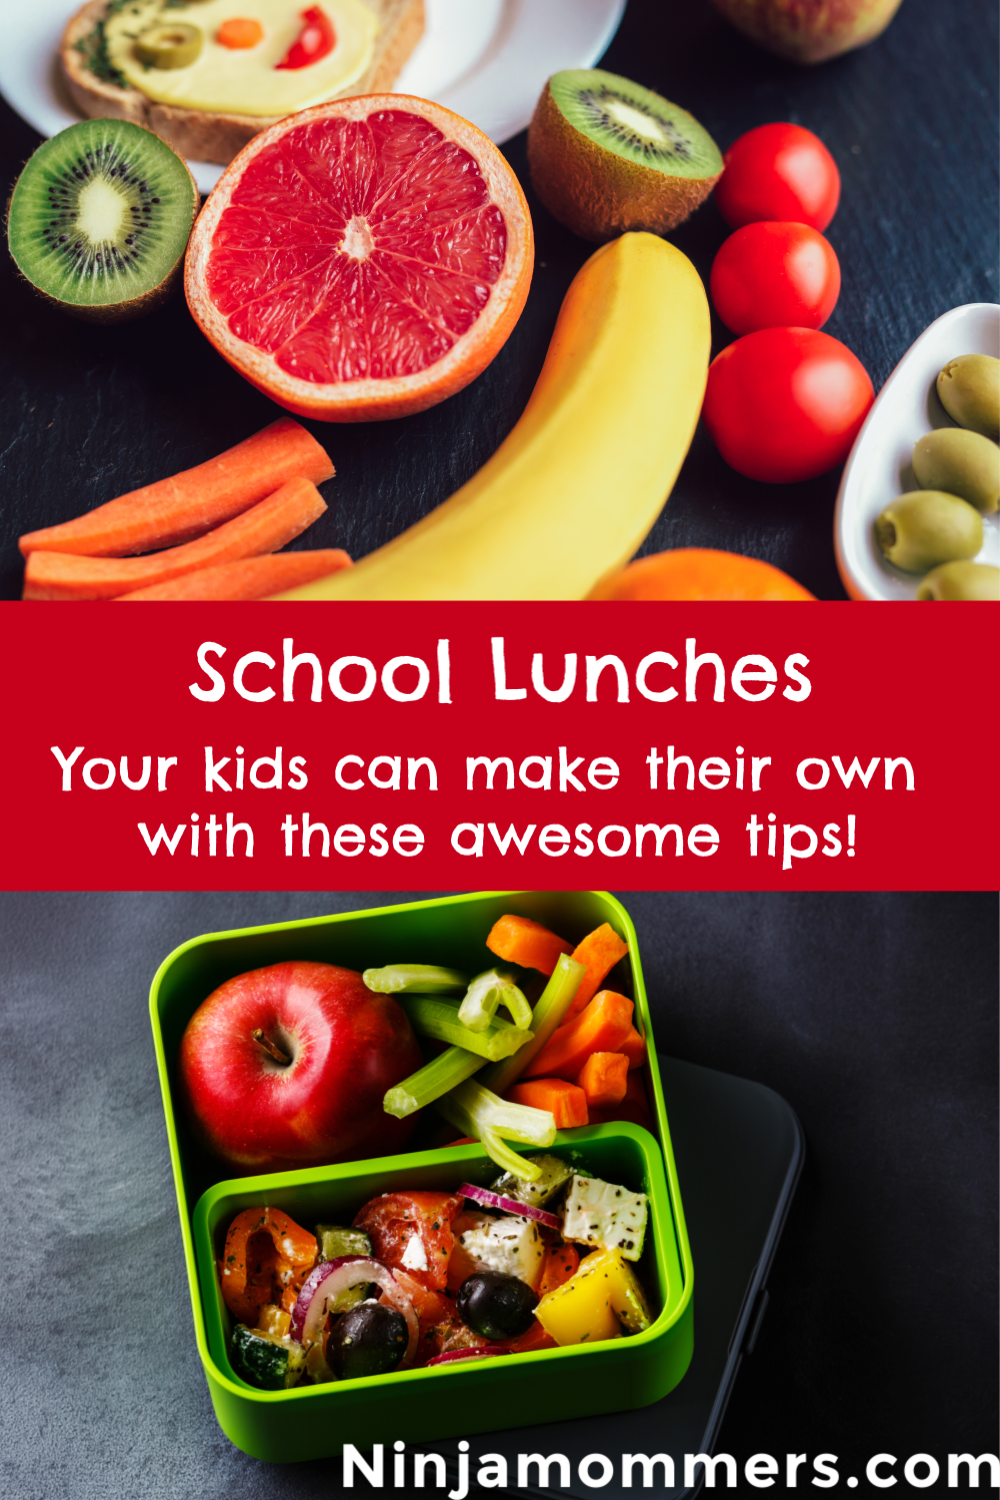 School Lunches Tips